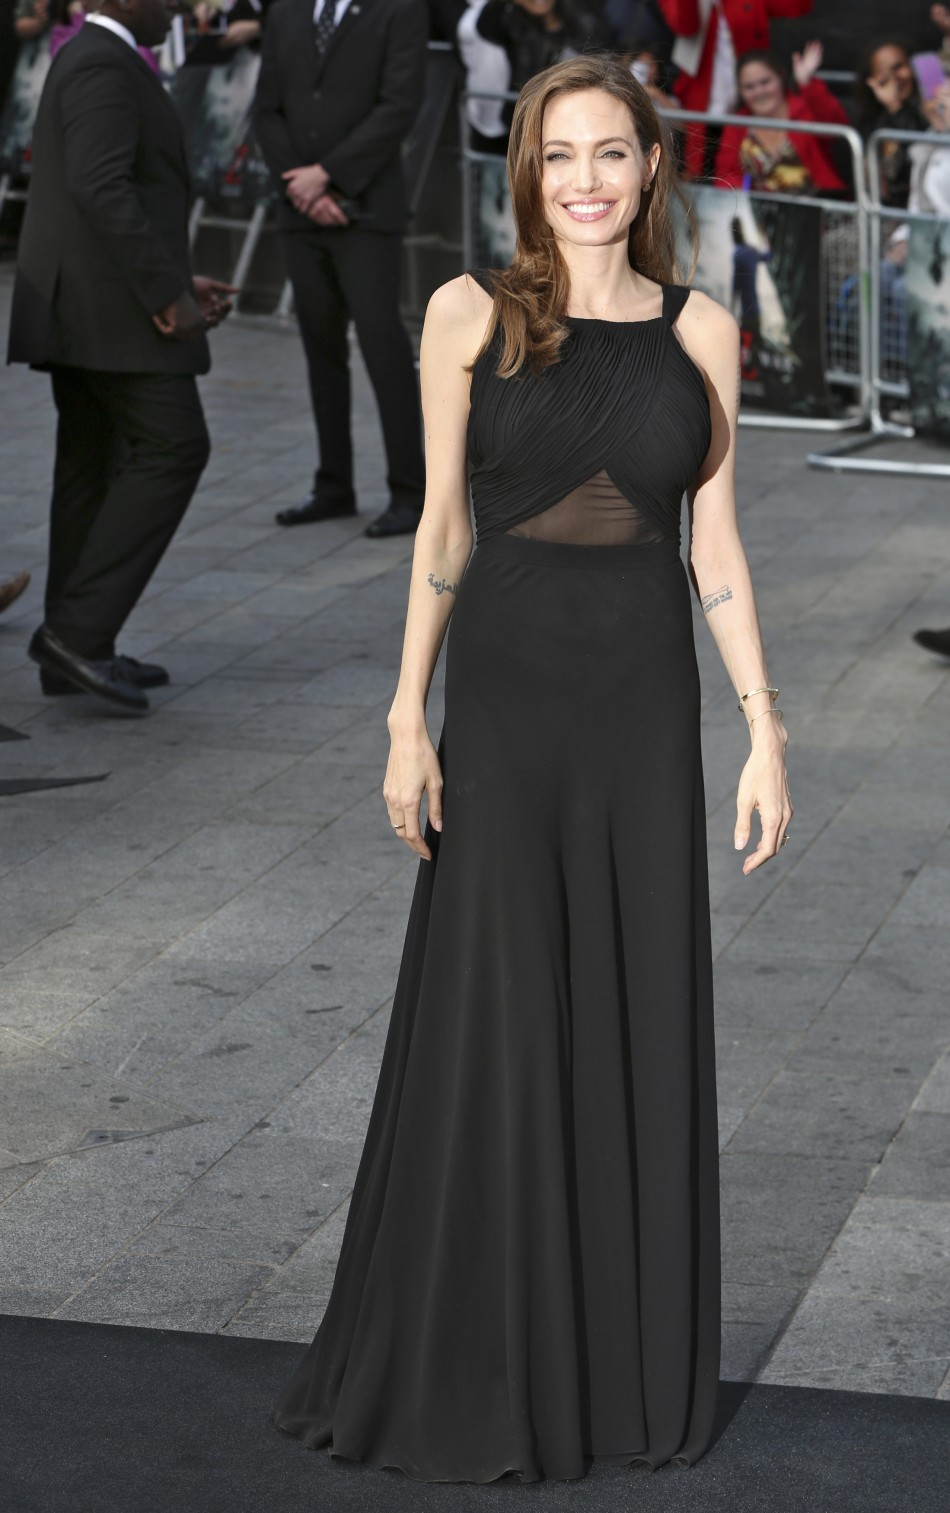 Angelina Jolie arrives for the world premiere of her husband Brad Pitts film World War Z in London June 2, 2013.